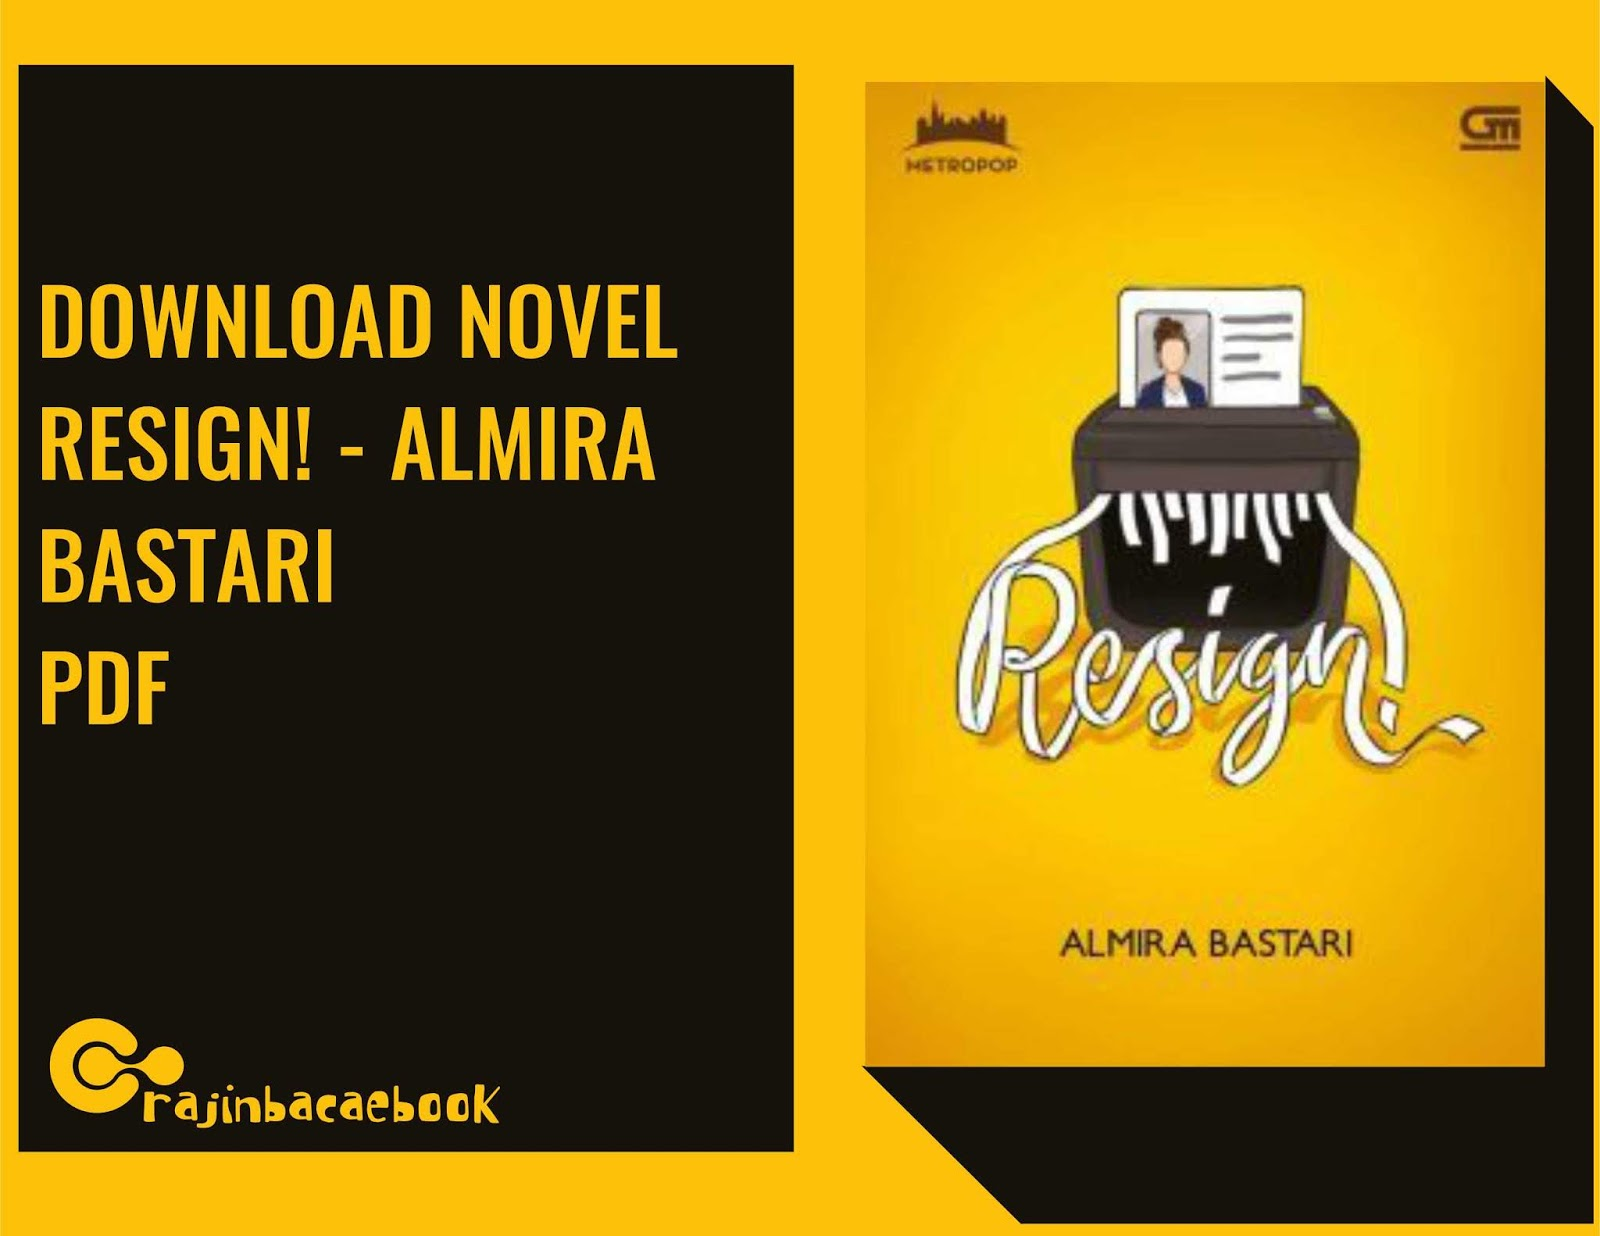 download novel pdf gratis terbaru